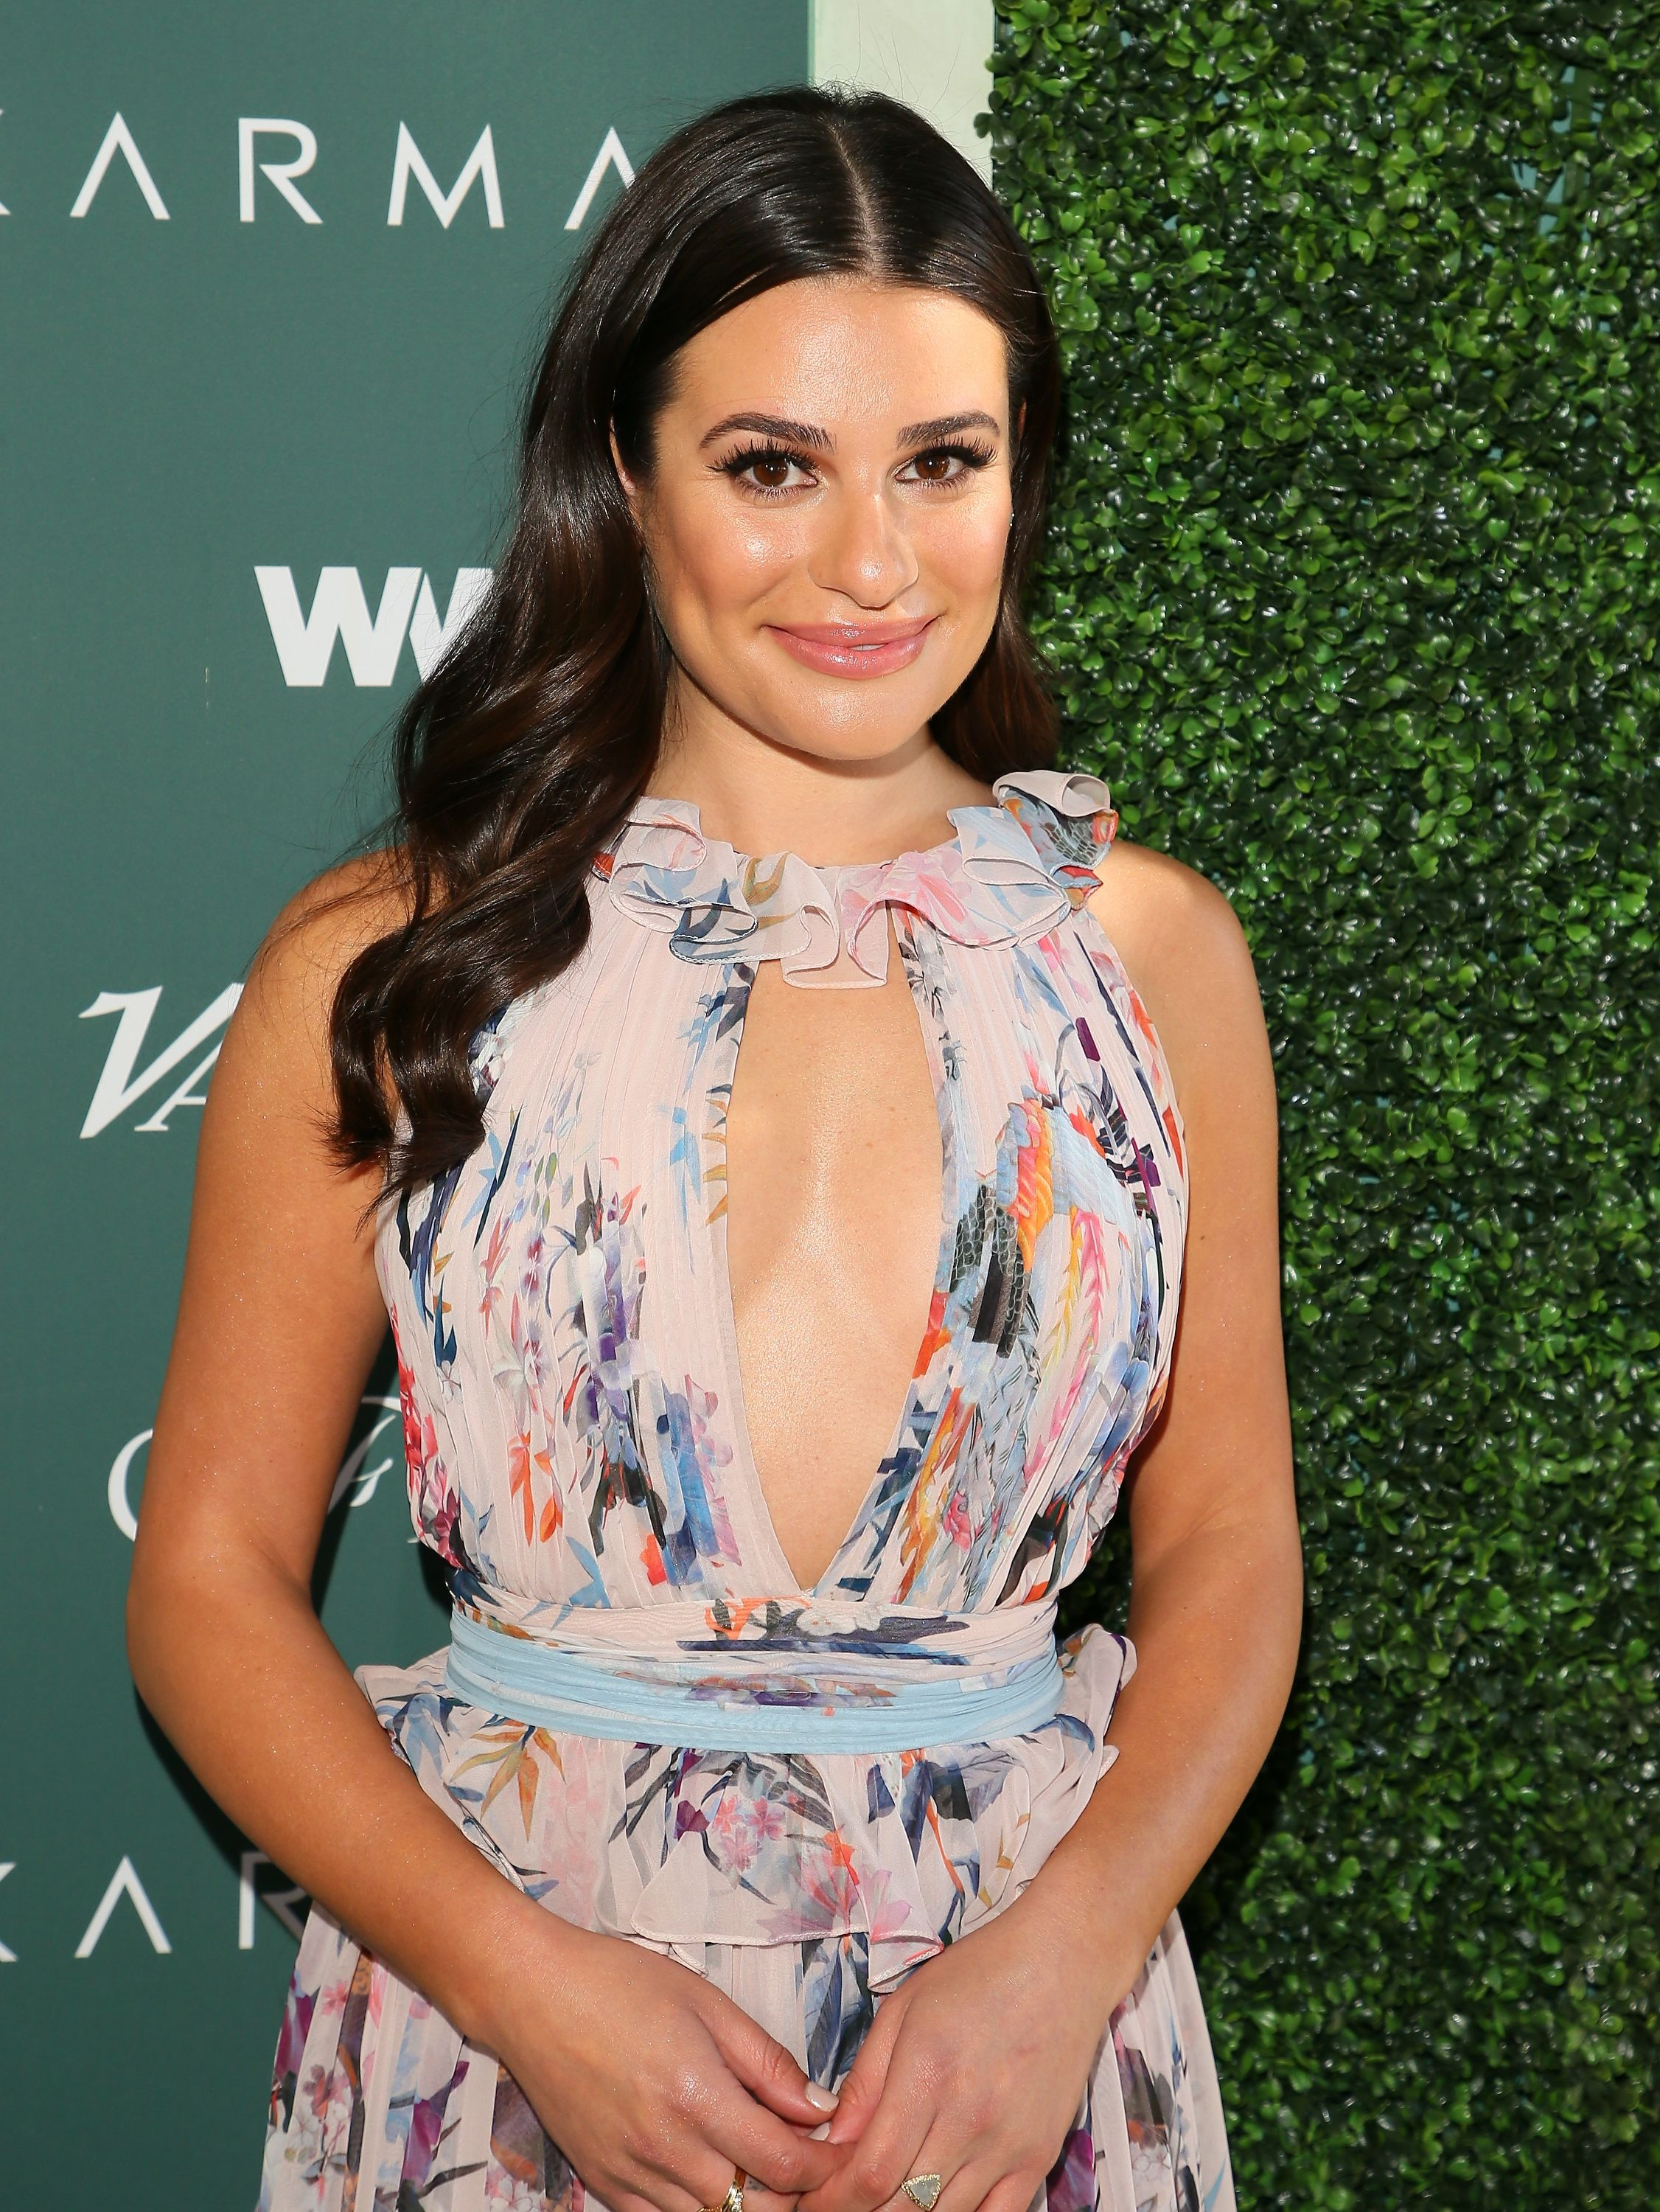 9972a6ee467 lea-michele-arrives-to-the-council-of-fashion-designers-of-news-photo-921716466-1540385853.jpg